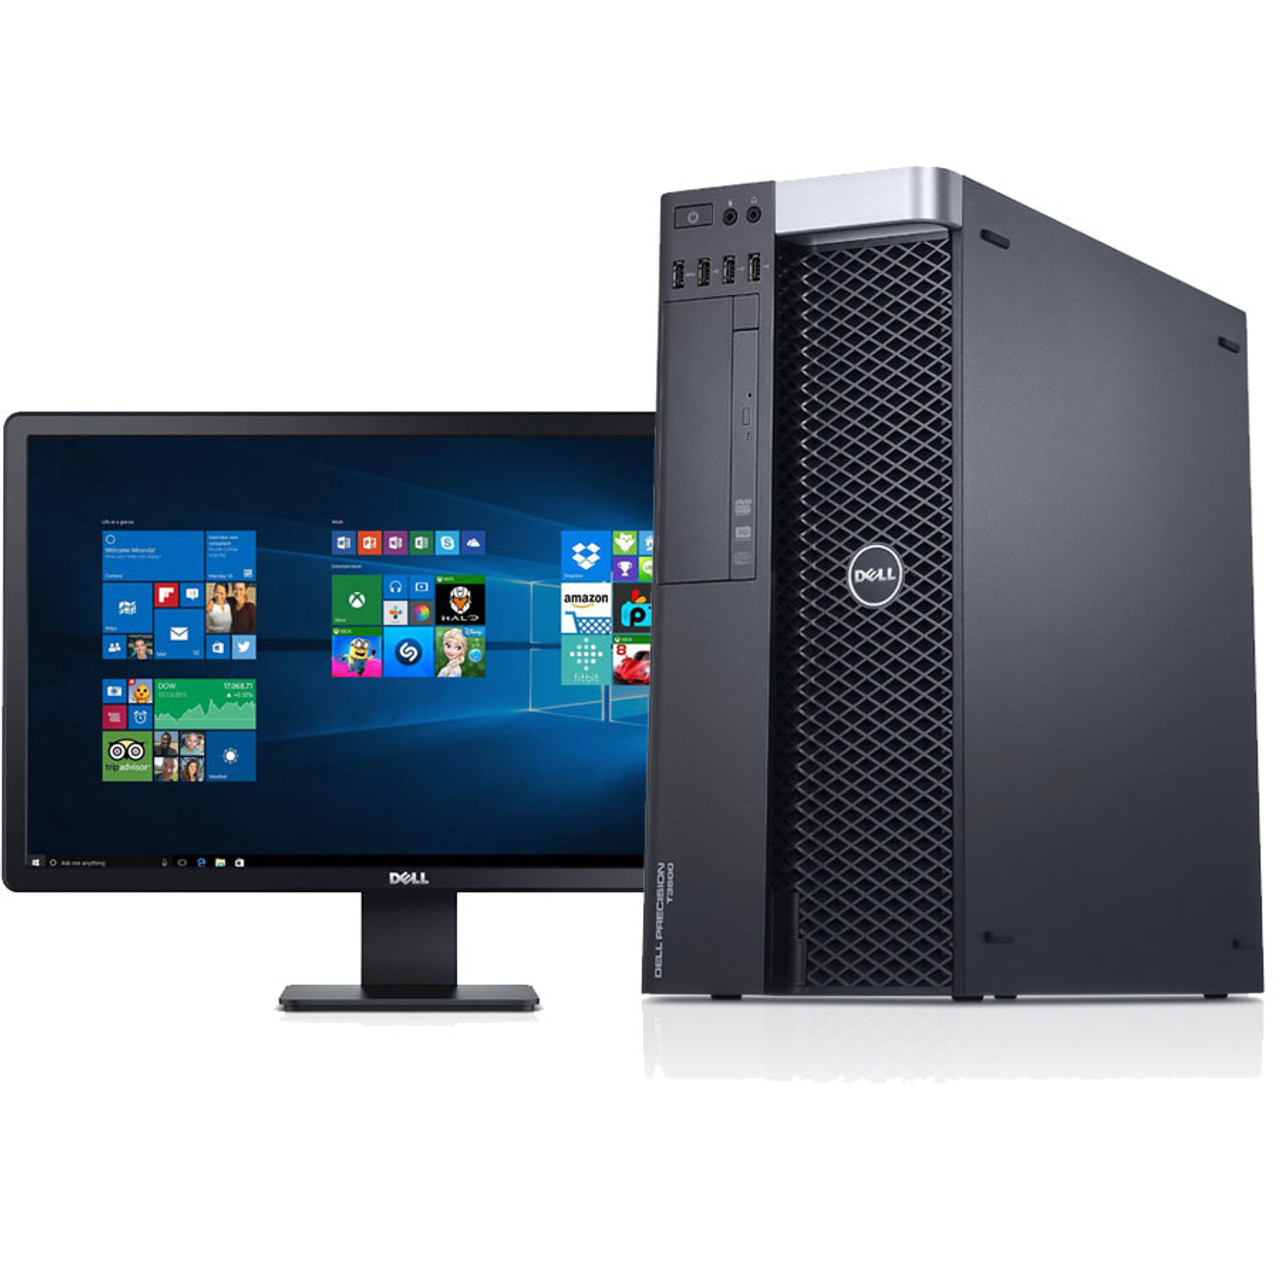 Dell Precision Workstation | 22